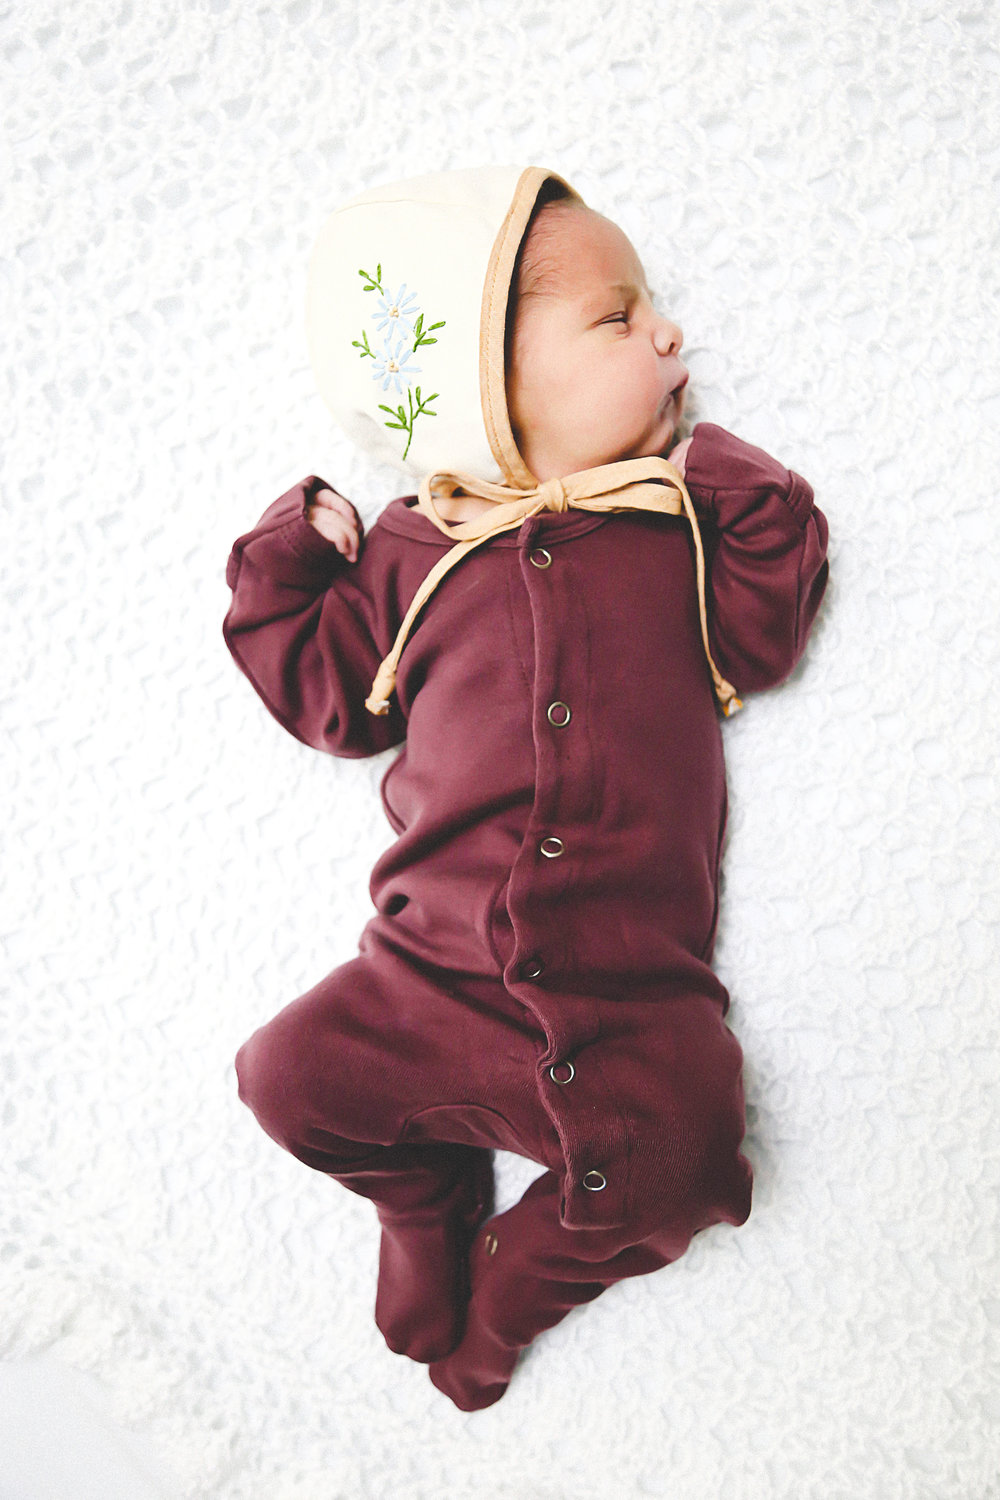 Newborn Christmas Baby in L'oved Baby Footed Overall in Eggplant